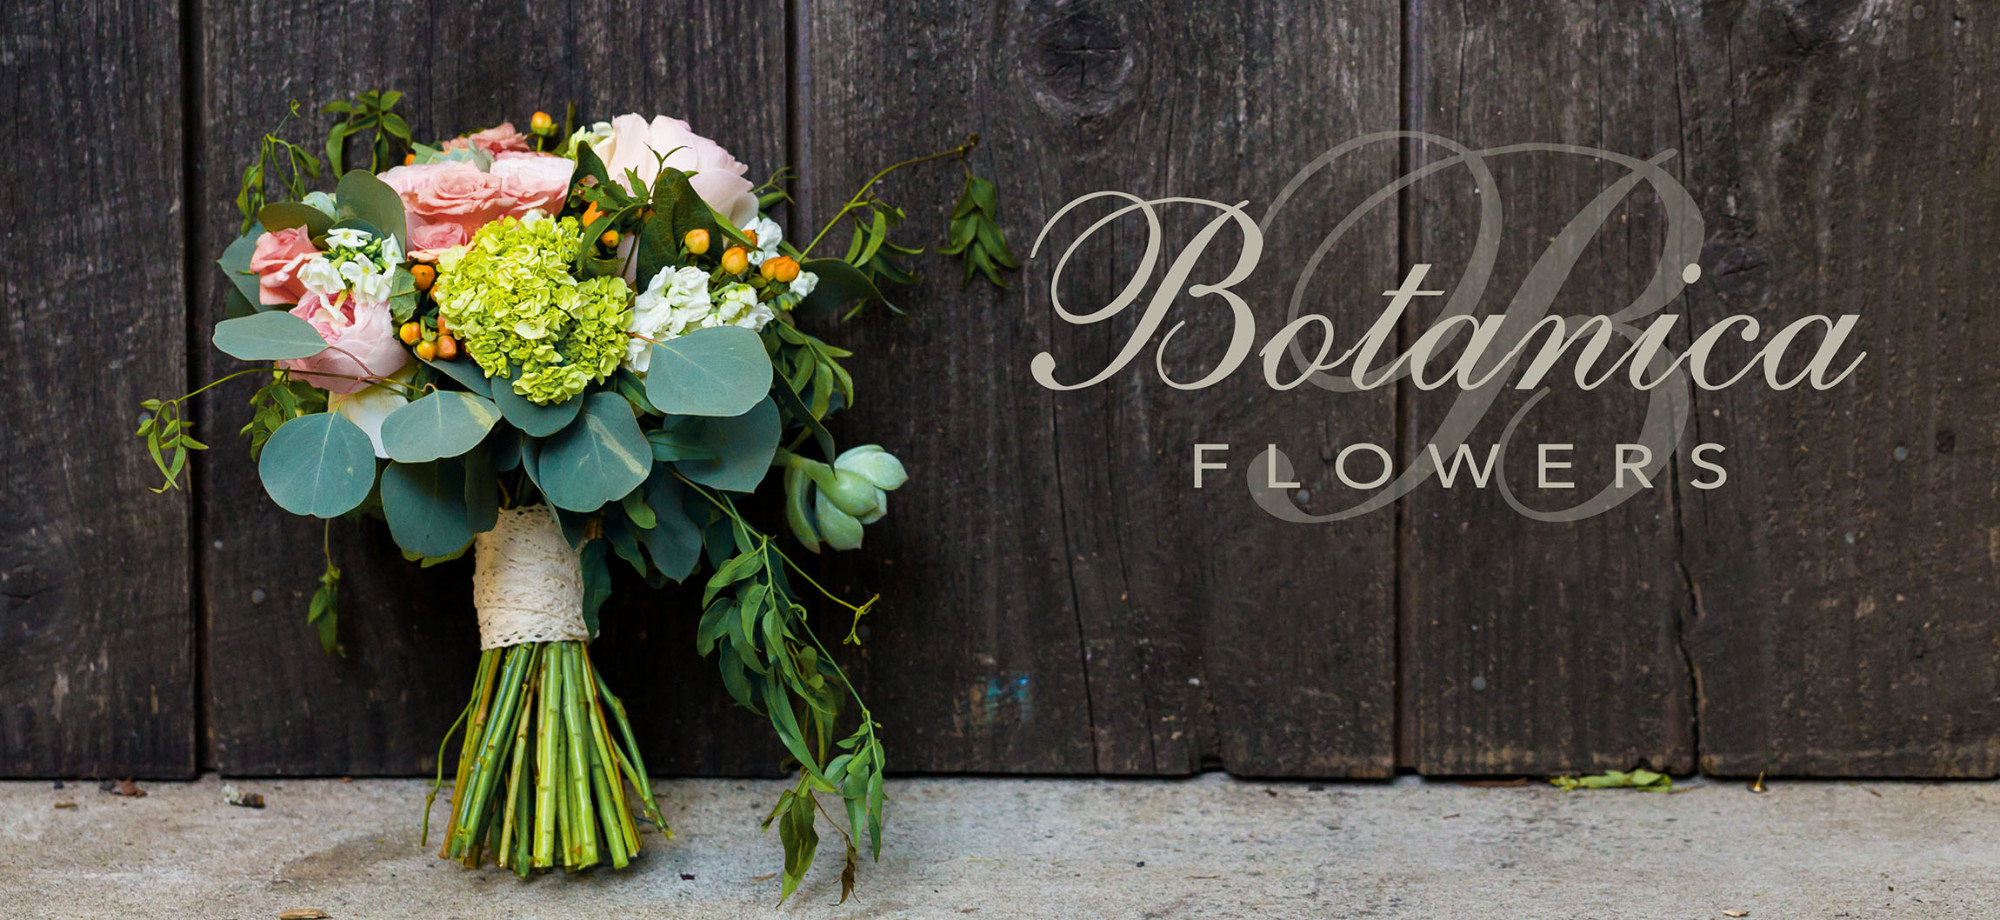 Columbus wedding florist botanica columbus wedding florist columbus wedding florist botanica columbus wedding florist botanica junglespirit Choice Image